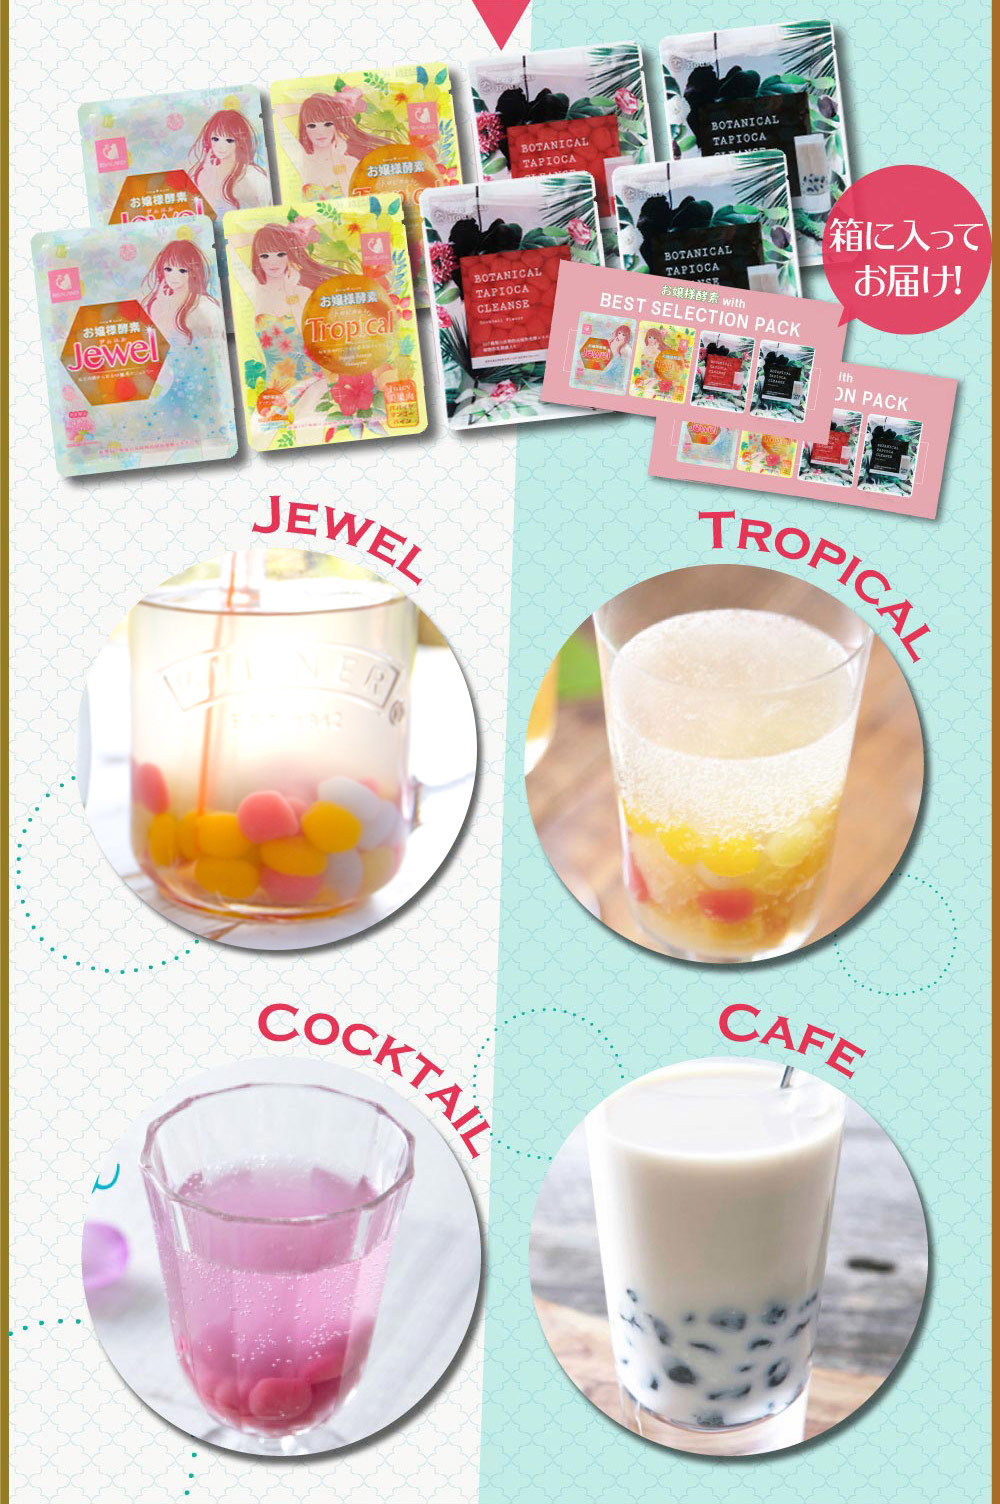 Jewel,Tropical,Cocktail,Cafe